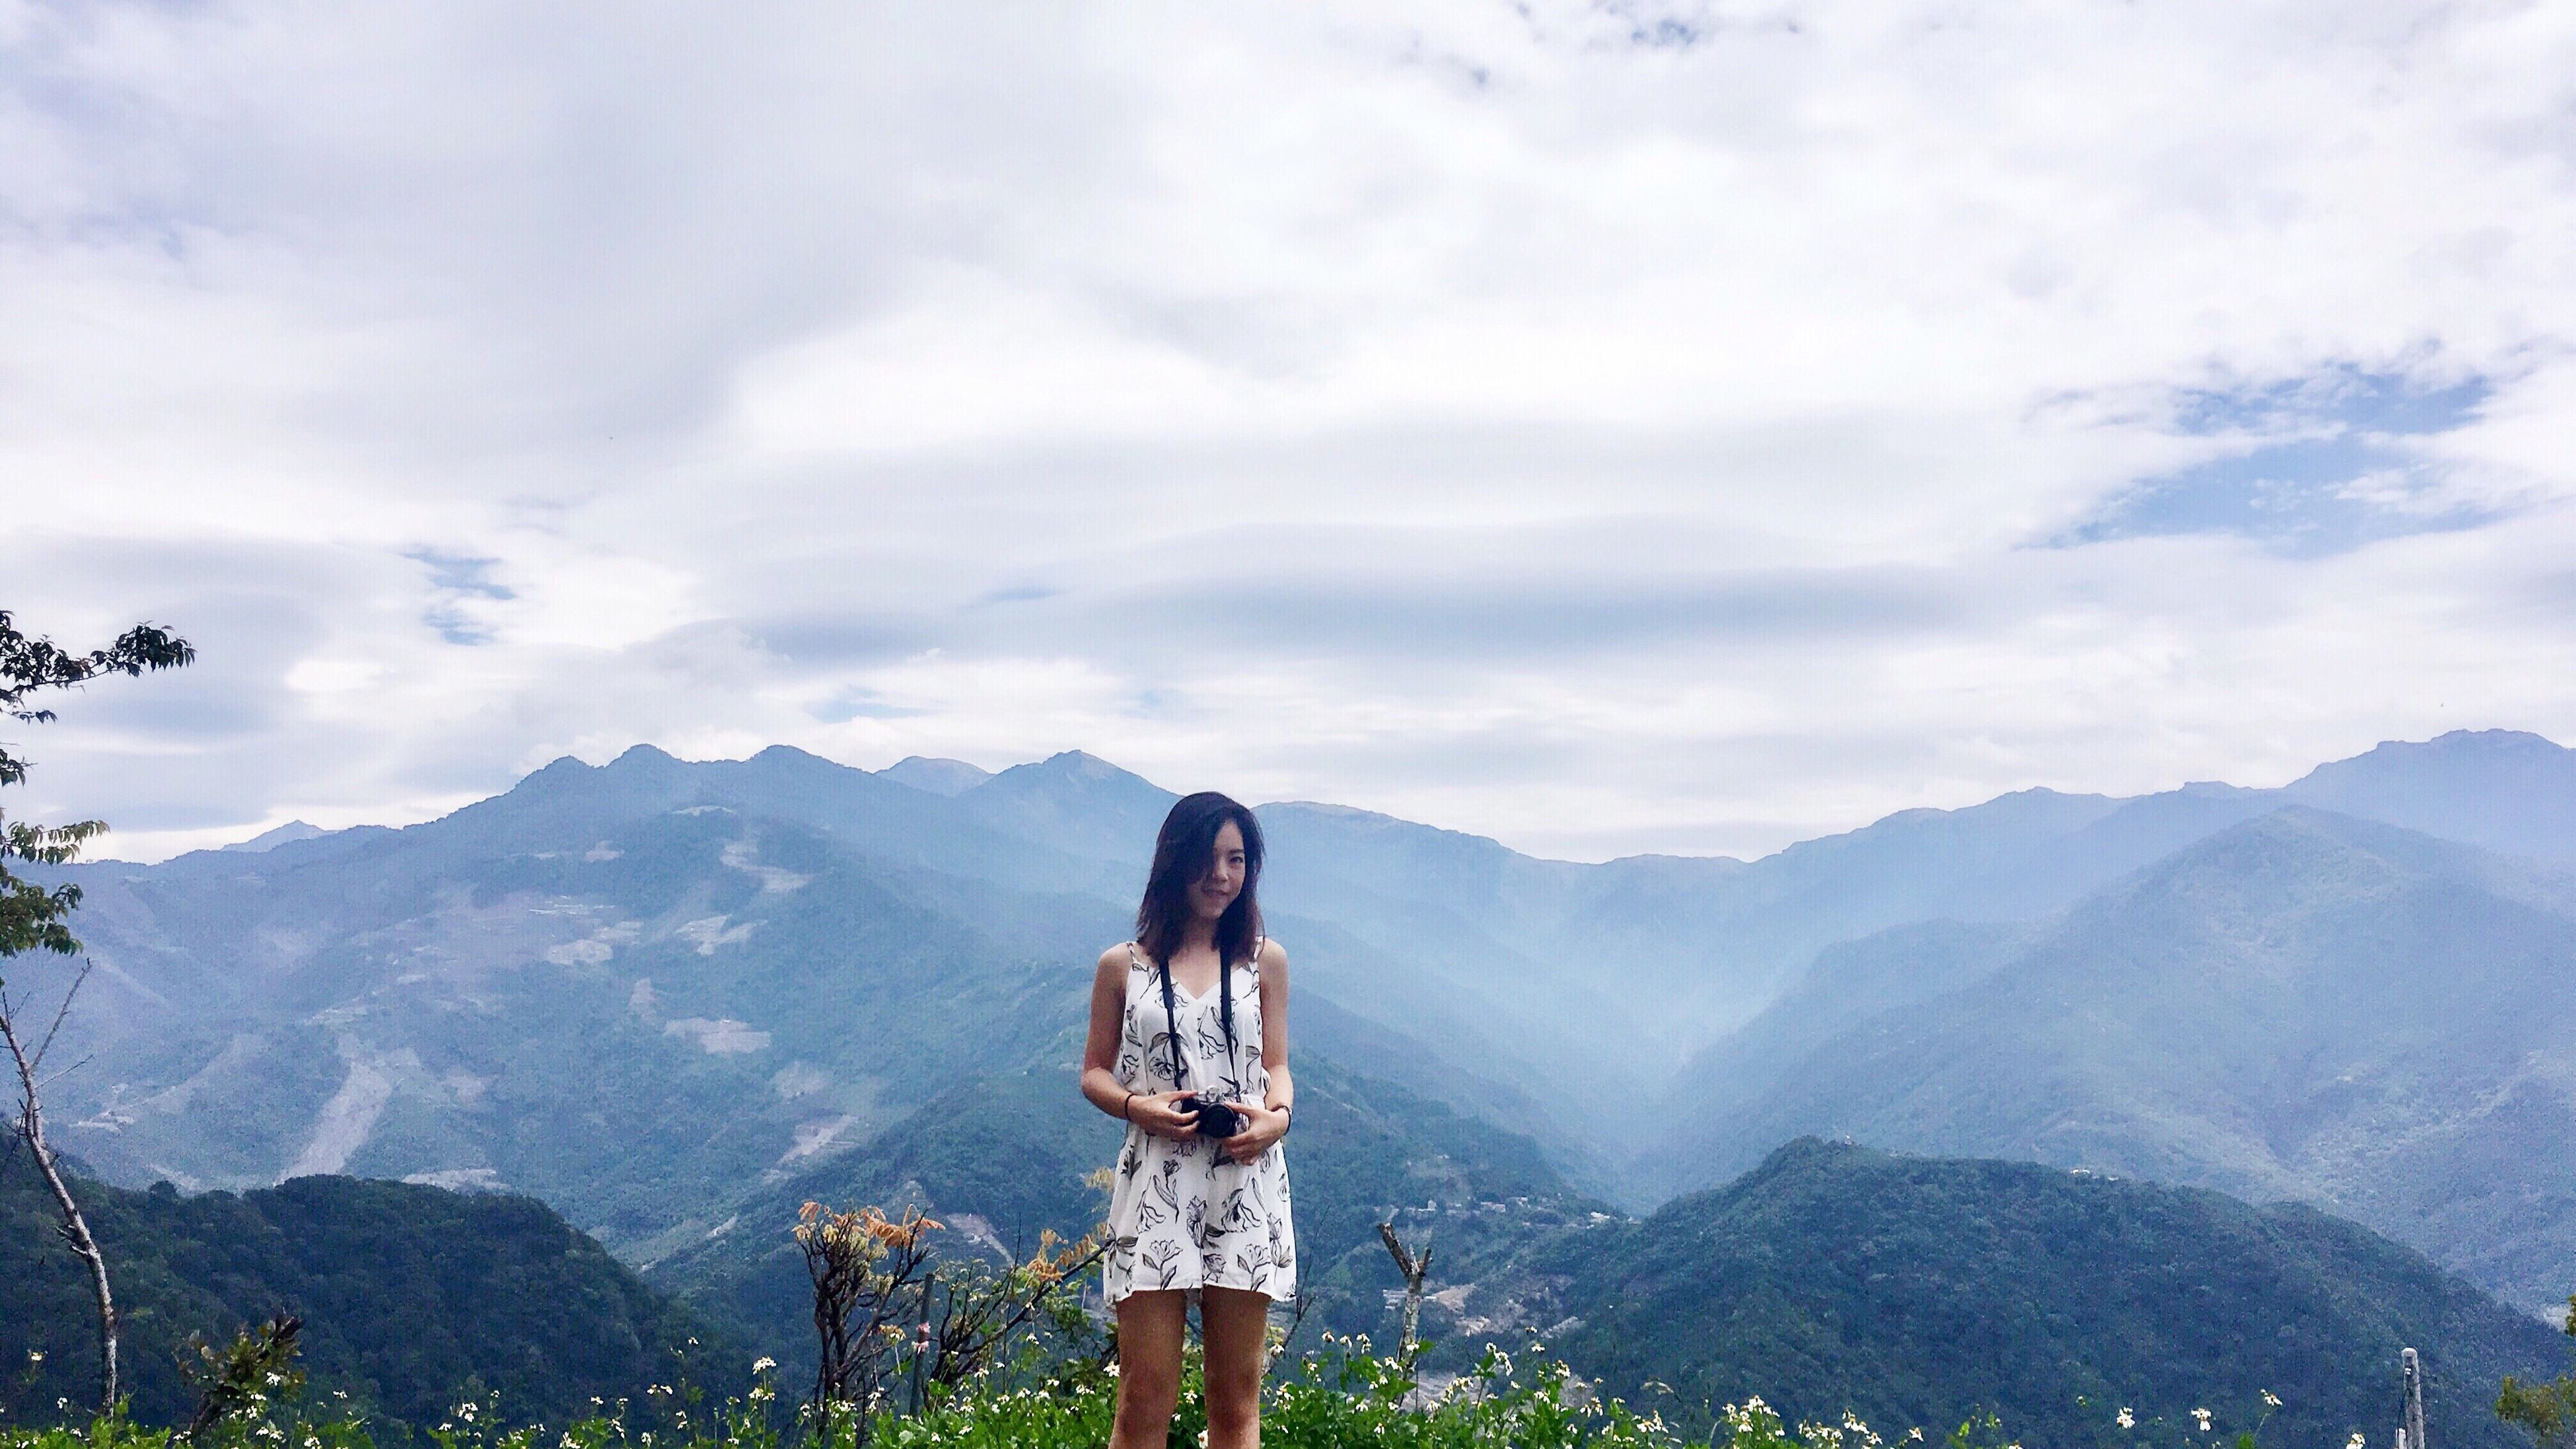 mountain, sky, real people, standing, cloud - sky, young adult, mountain range, beauty in nature, nature, one person, young women, day, casual clothing, outdoors, lifestyles, women, scenics, beautiful woman, tree, adult, people